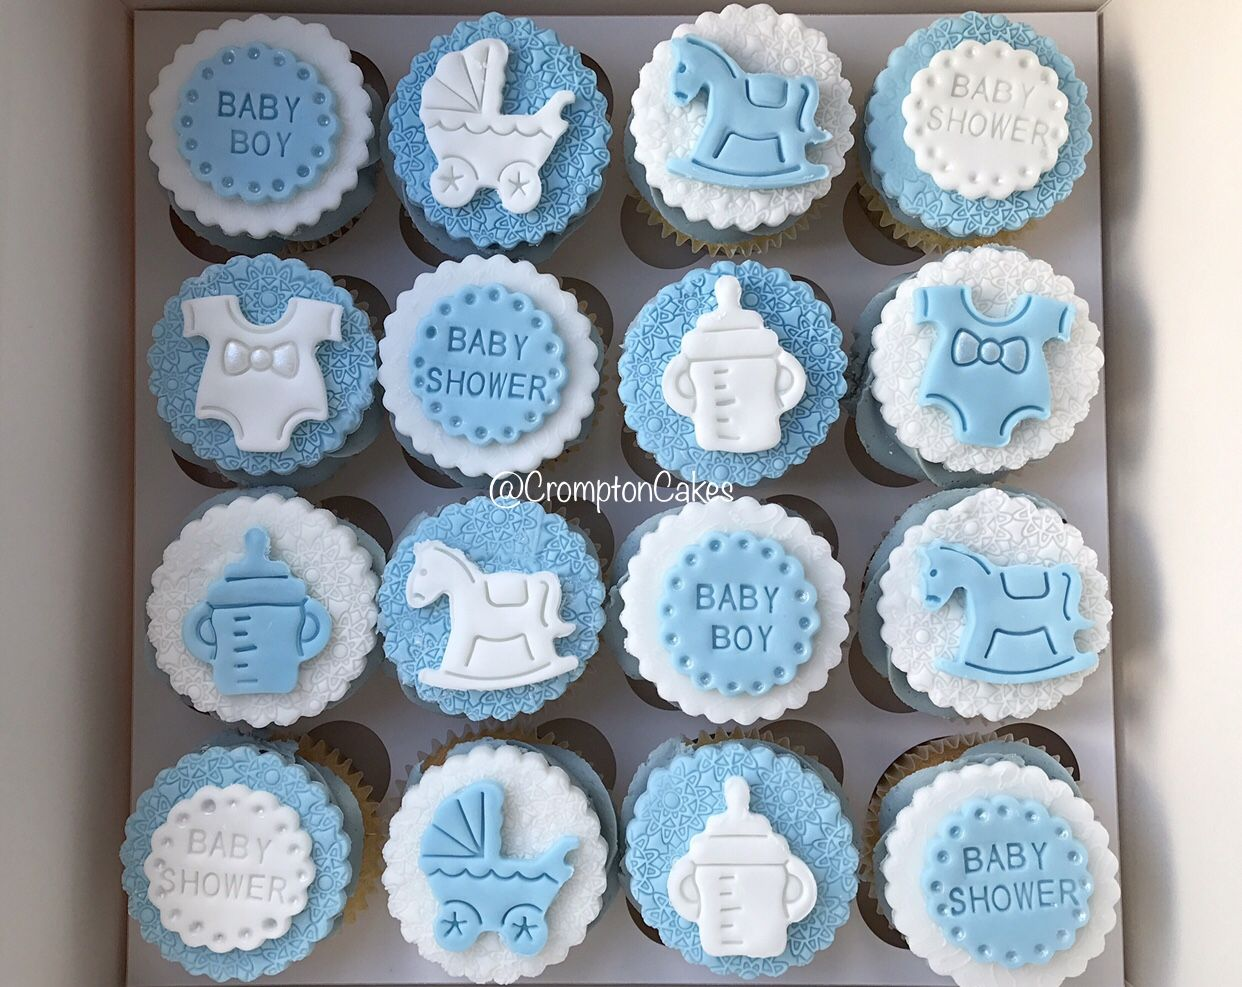 Baby Shower Cupcakes For A Boy Baby Shower Cupcakes For Boy